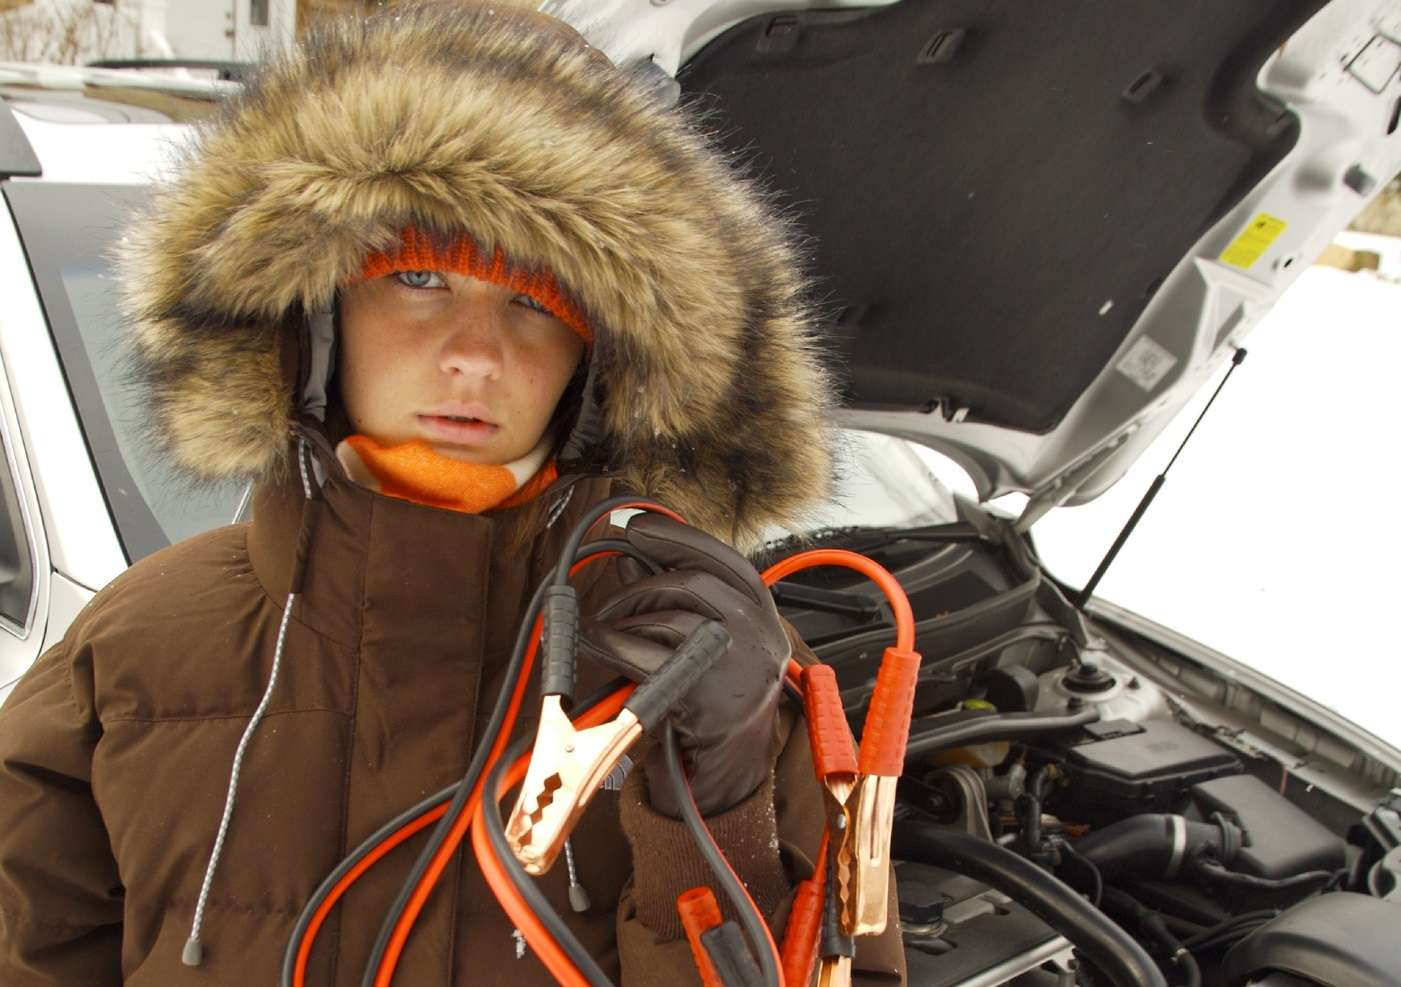 A person in a big winter coat holding up jumper cables in front of a car with its hood open.